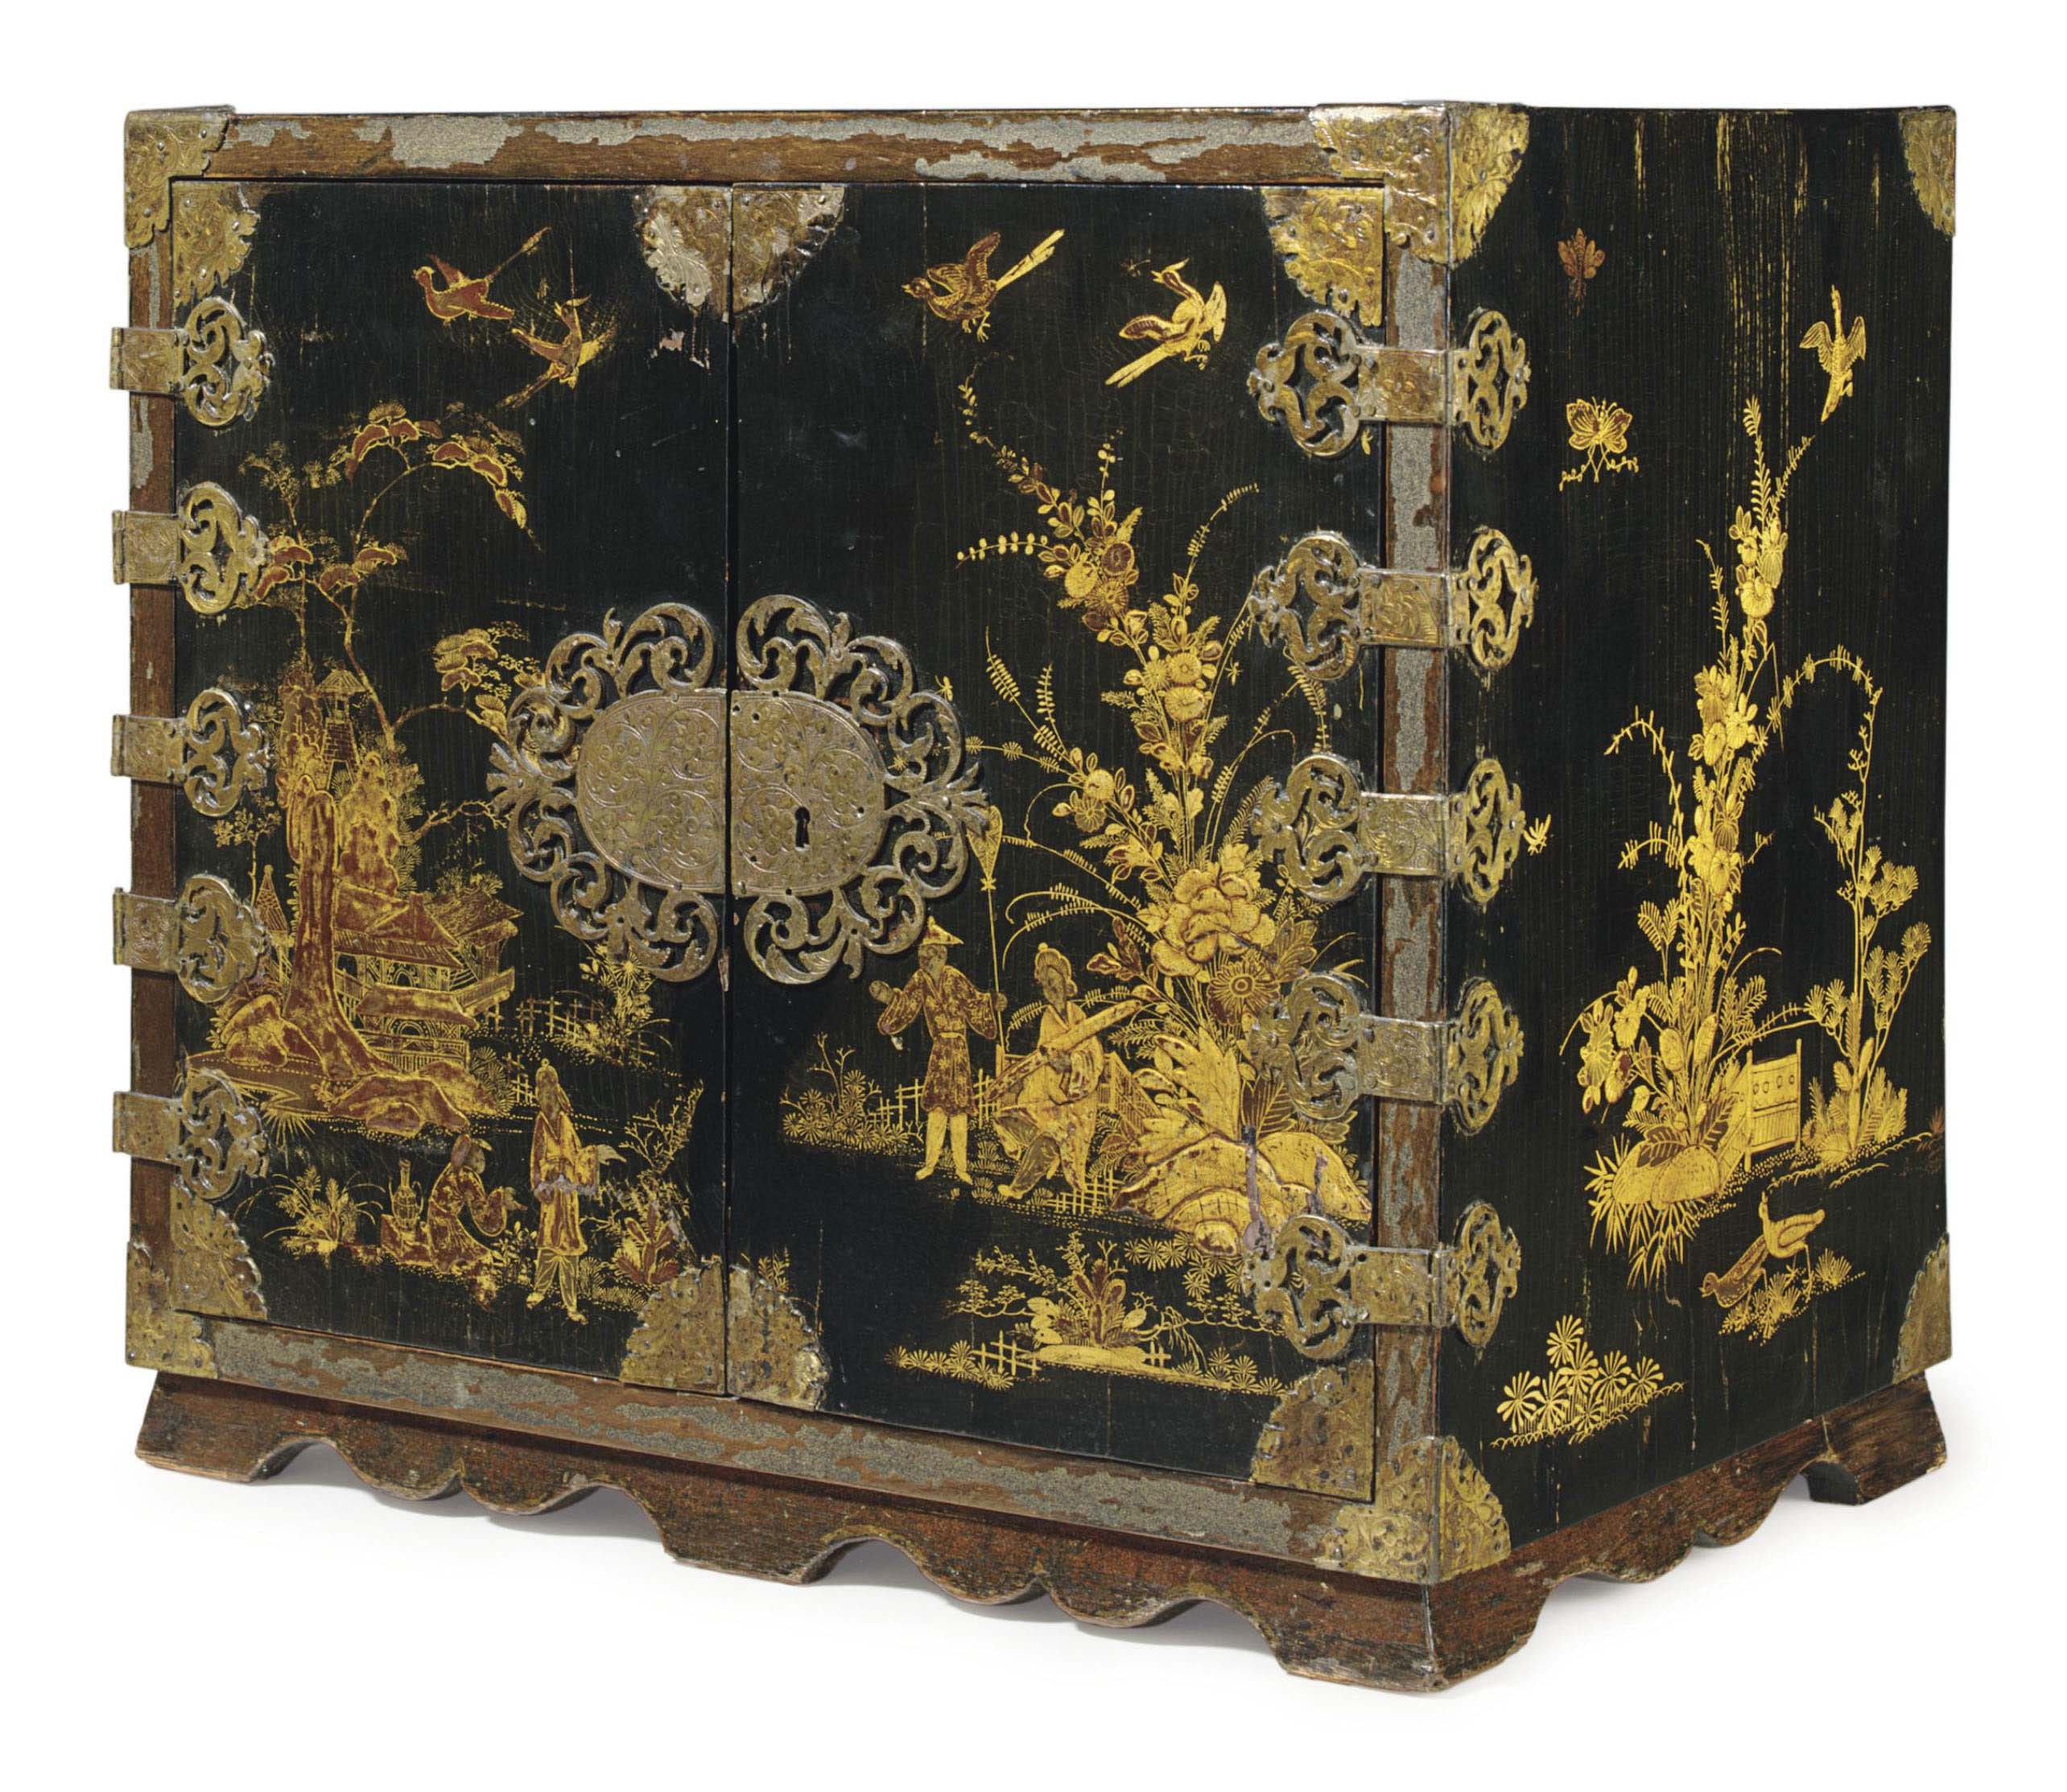 A QUEEN ANNE BLACK AND GILT-JAPANNED TABLE CABINET